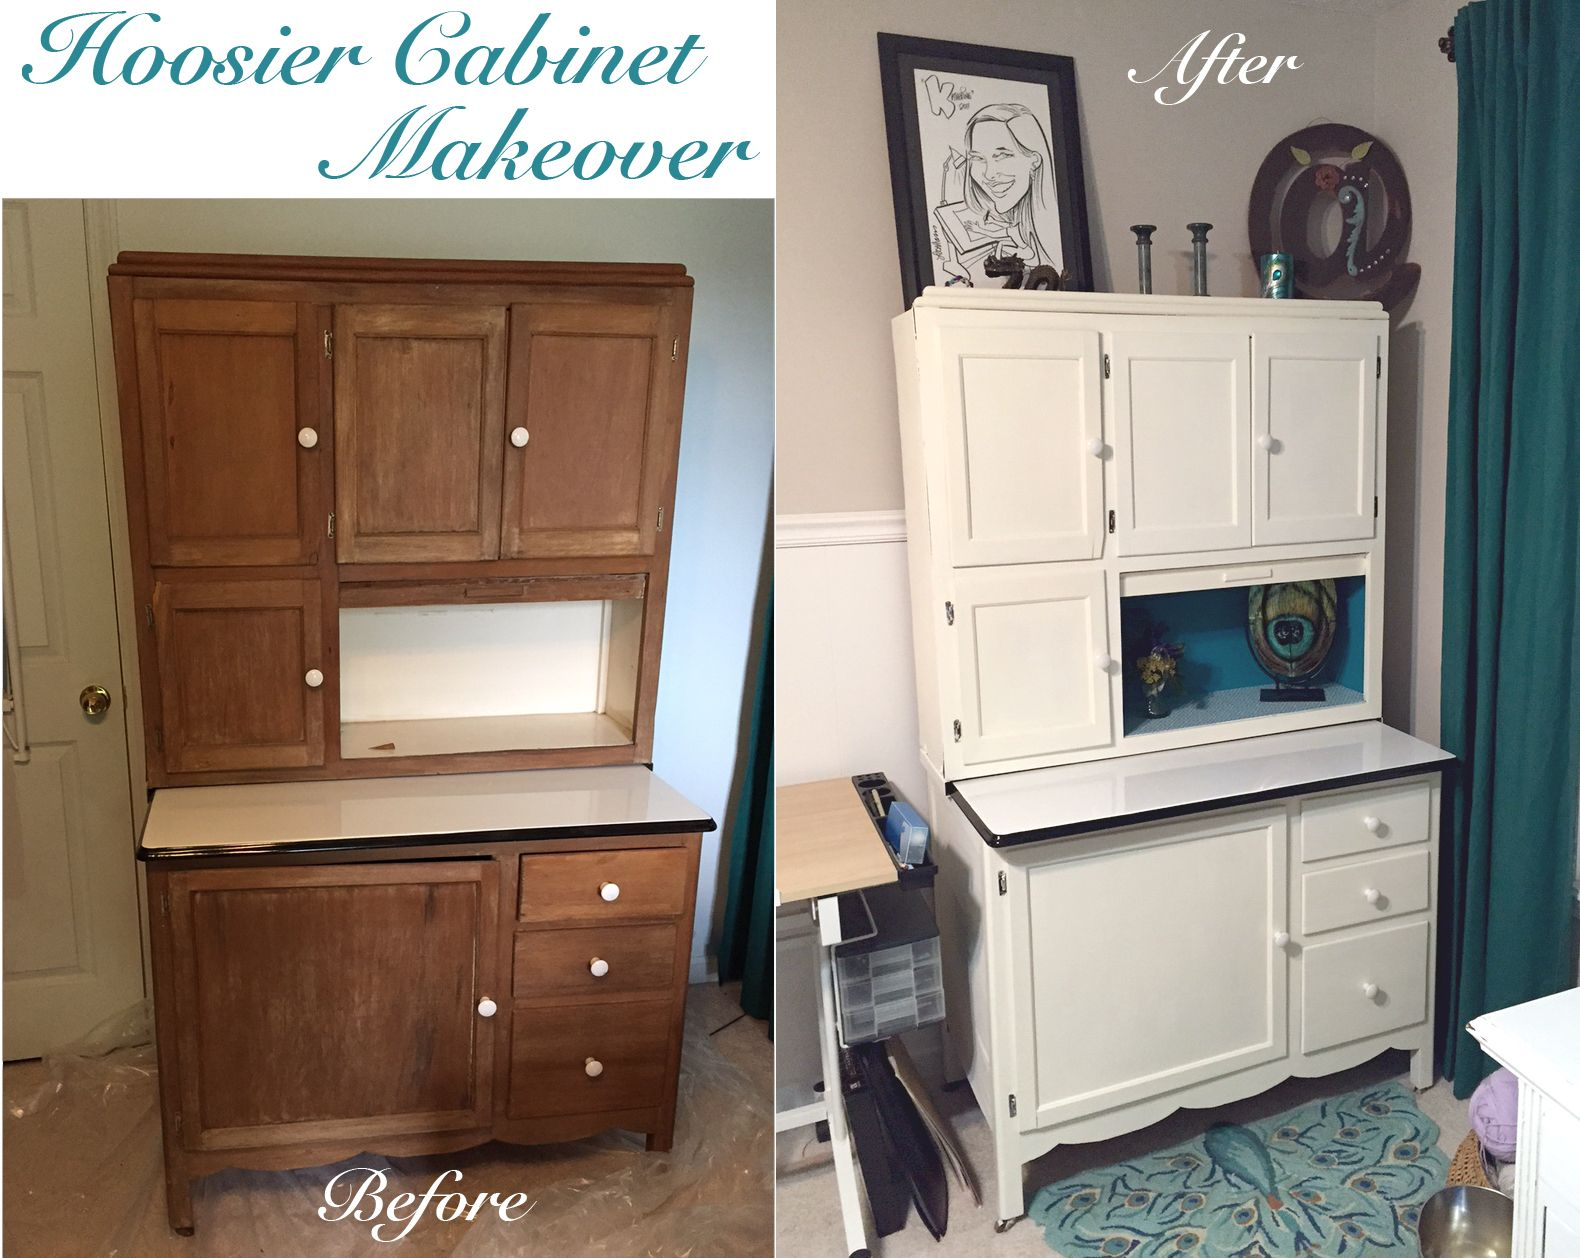 The Crafty Peacock: Hoosier Cabinet Makeover